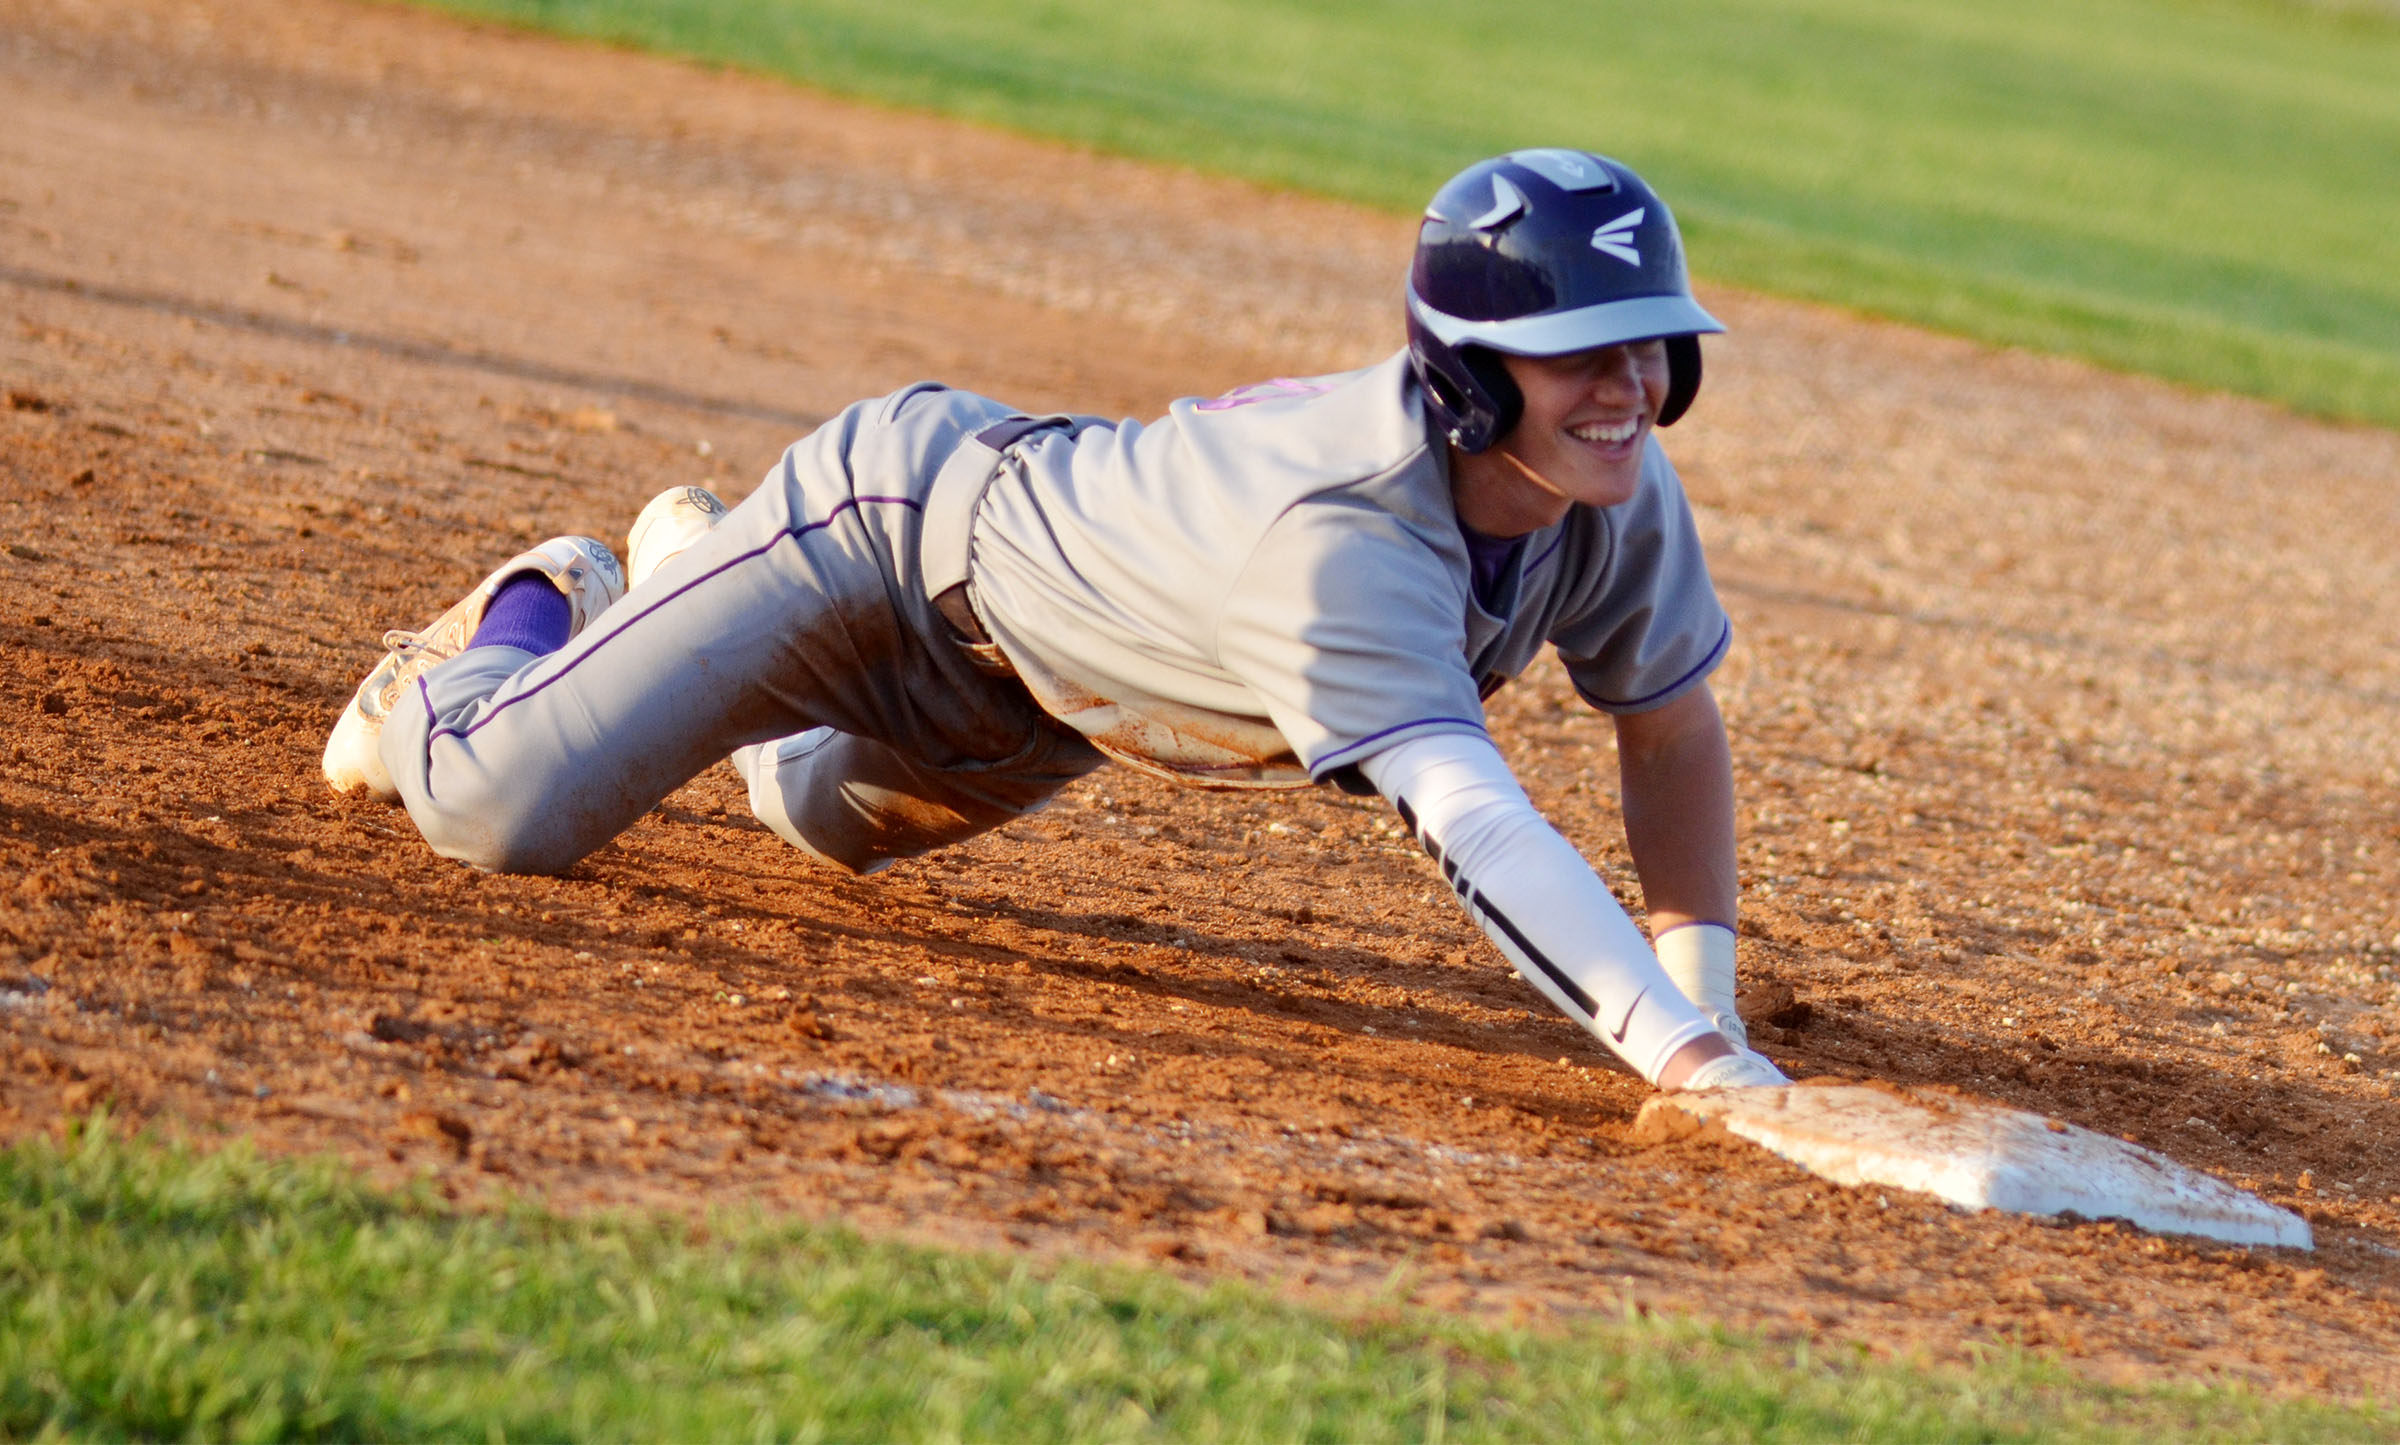 CHS senior Zack Bottoms smiles as he dives back to first base.